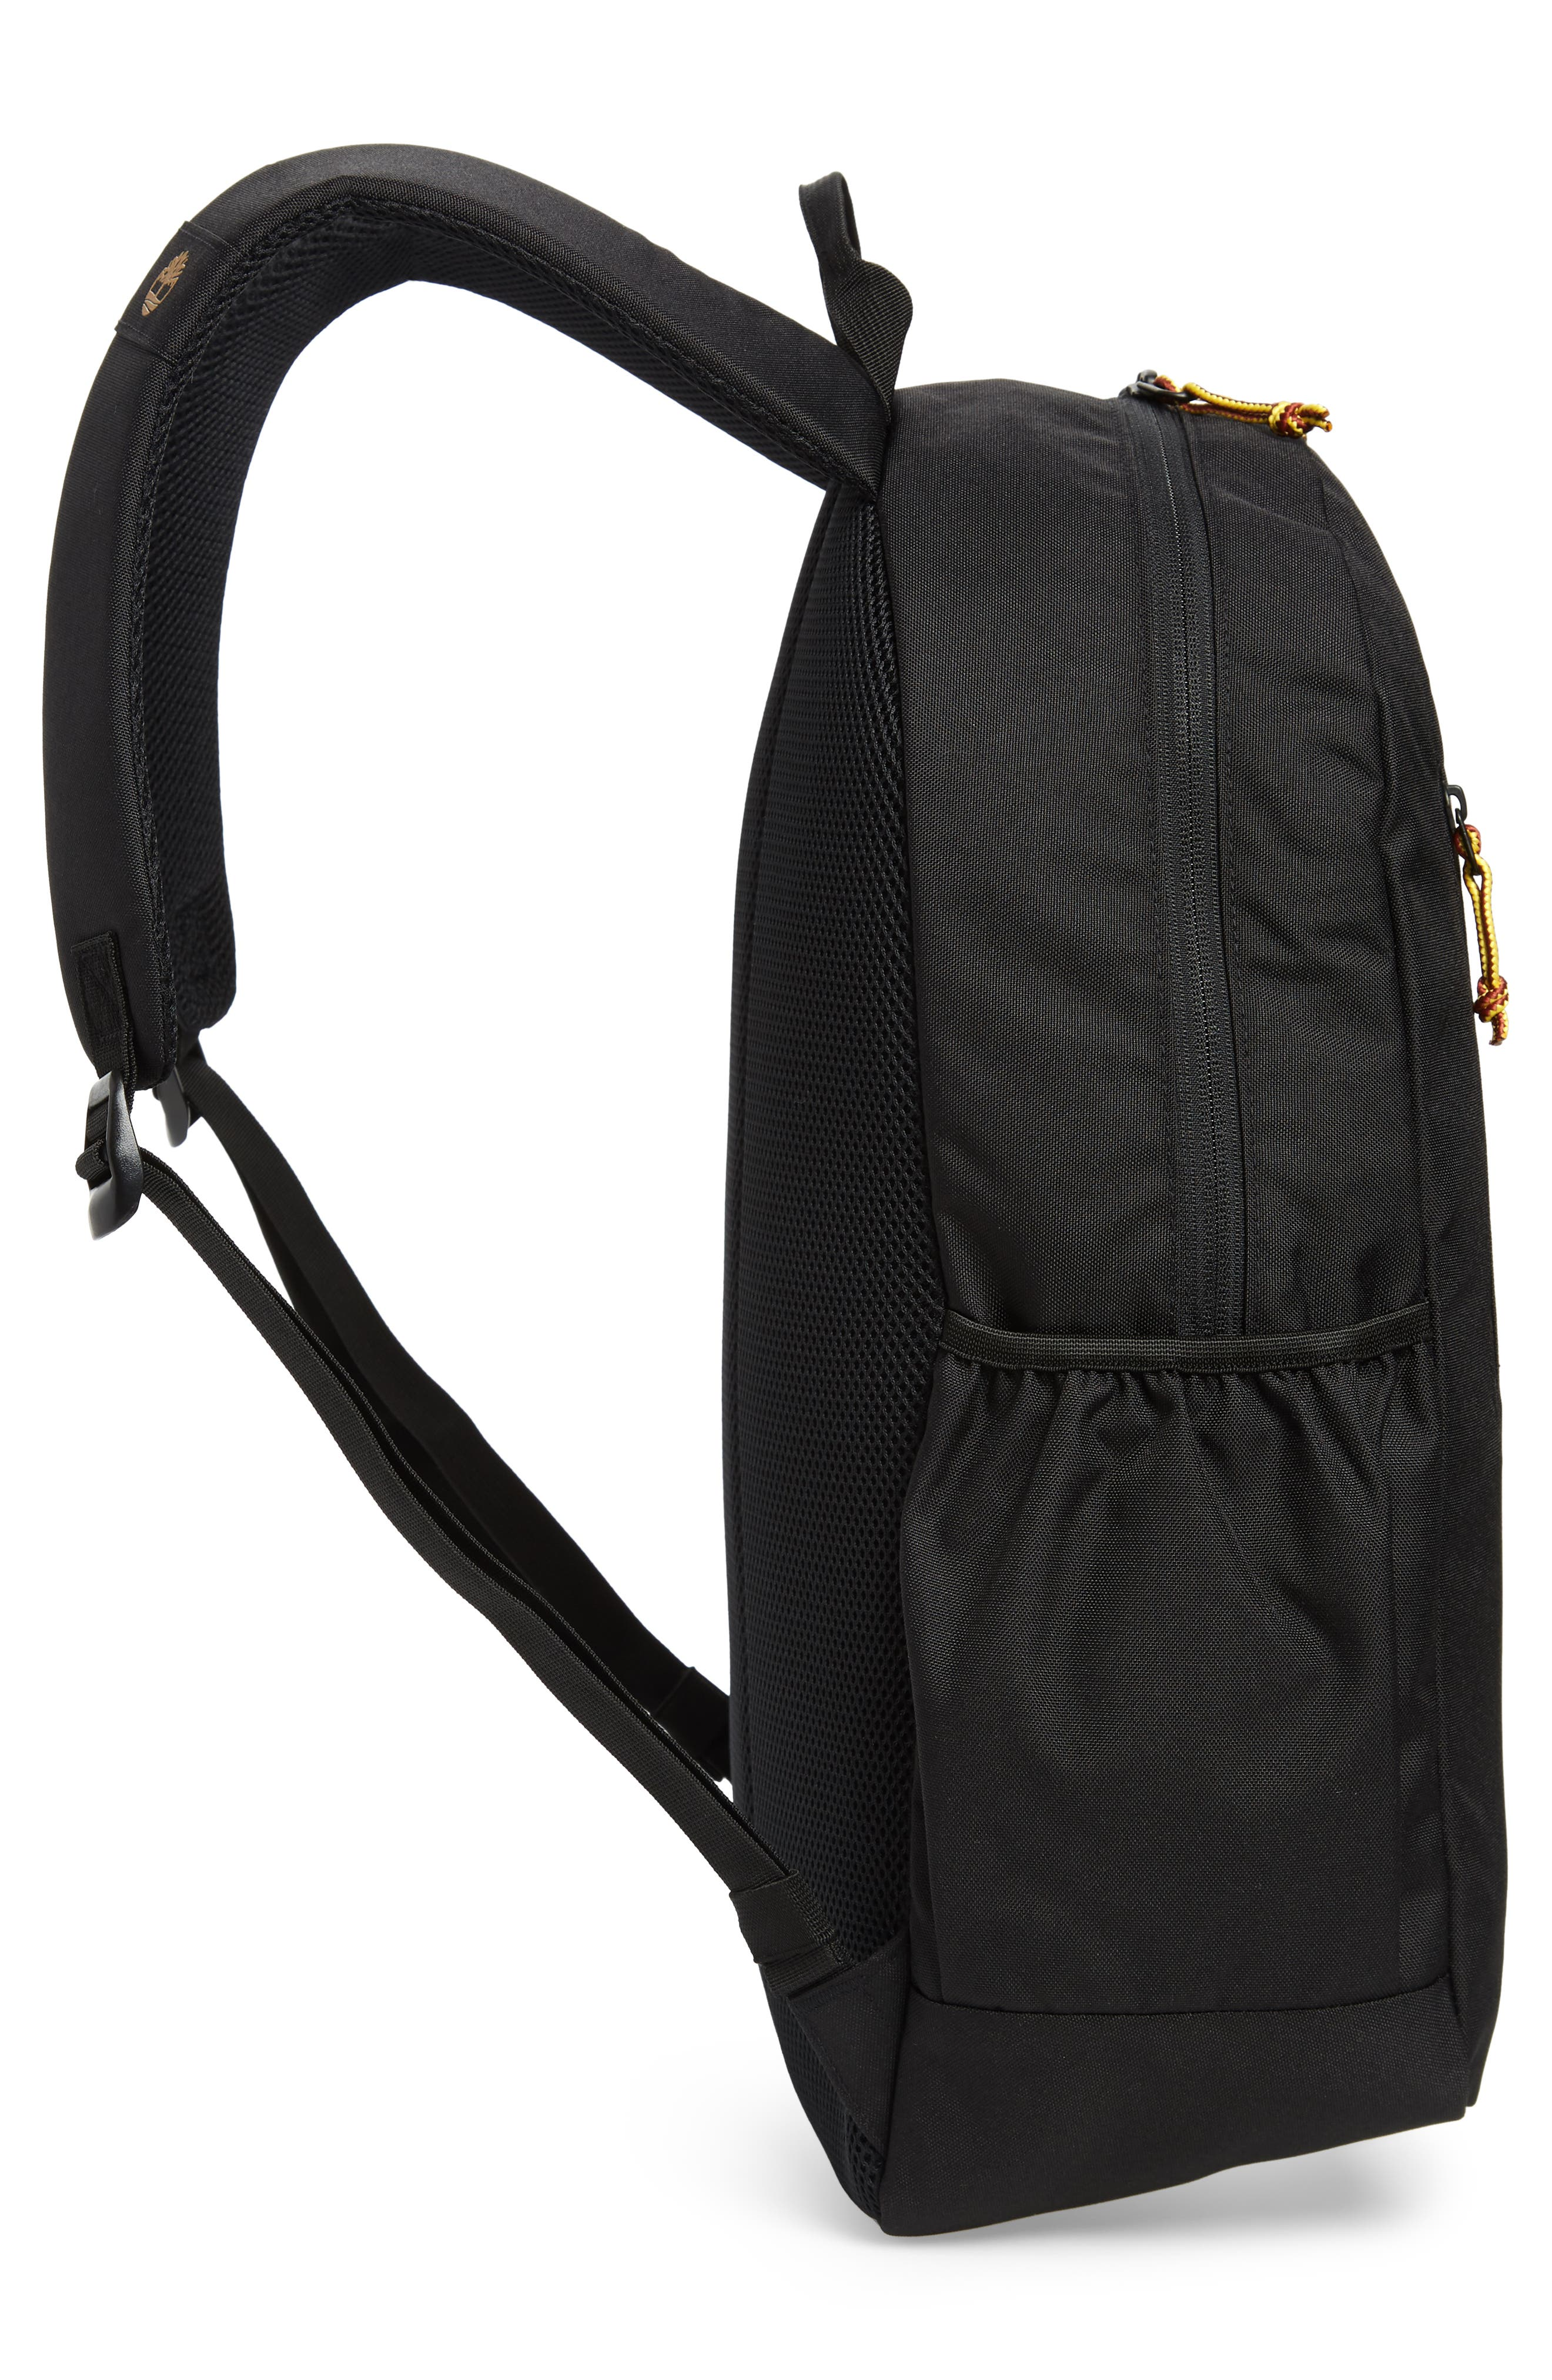 Linear Logo Water Resistant Backpack,                             Alternate thumbnail 5, color,                             BLACK W/ WHEAT LOGO